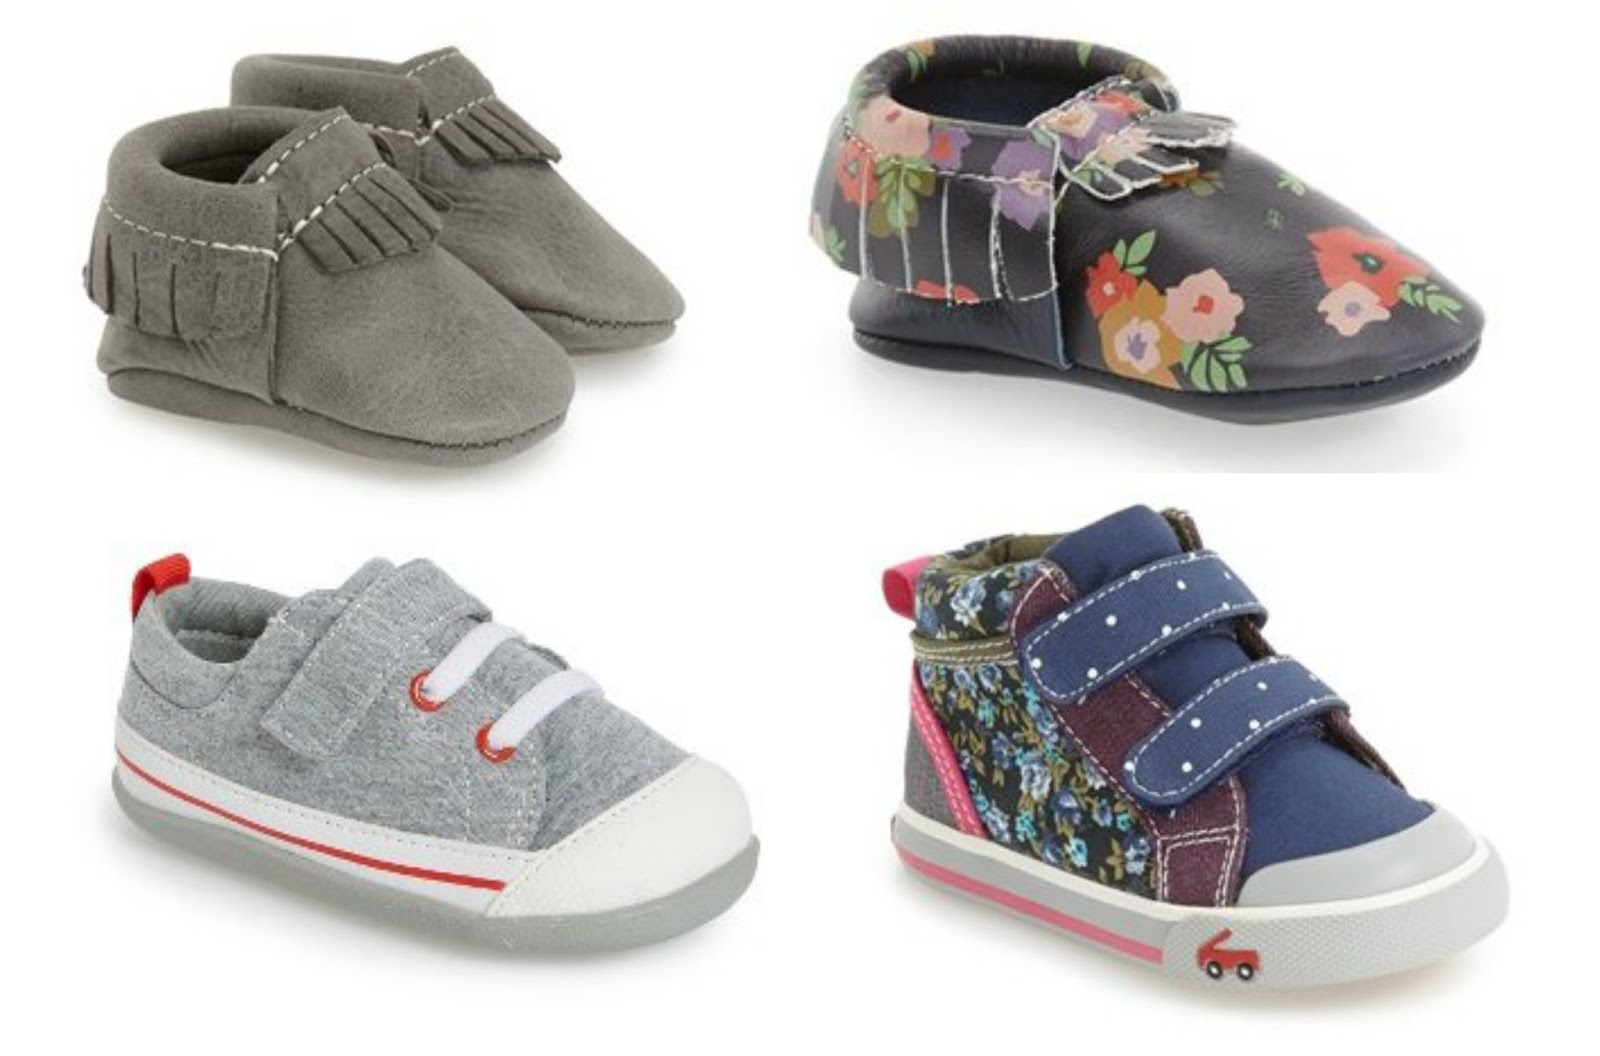 a72066ed82d Shoe is one of Ophelia s very favorite words right now. She s obsessed with  putting them on